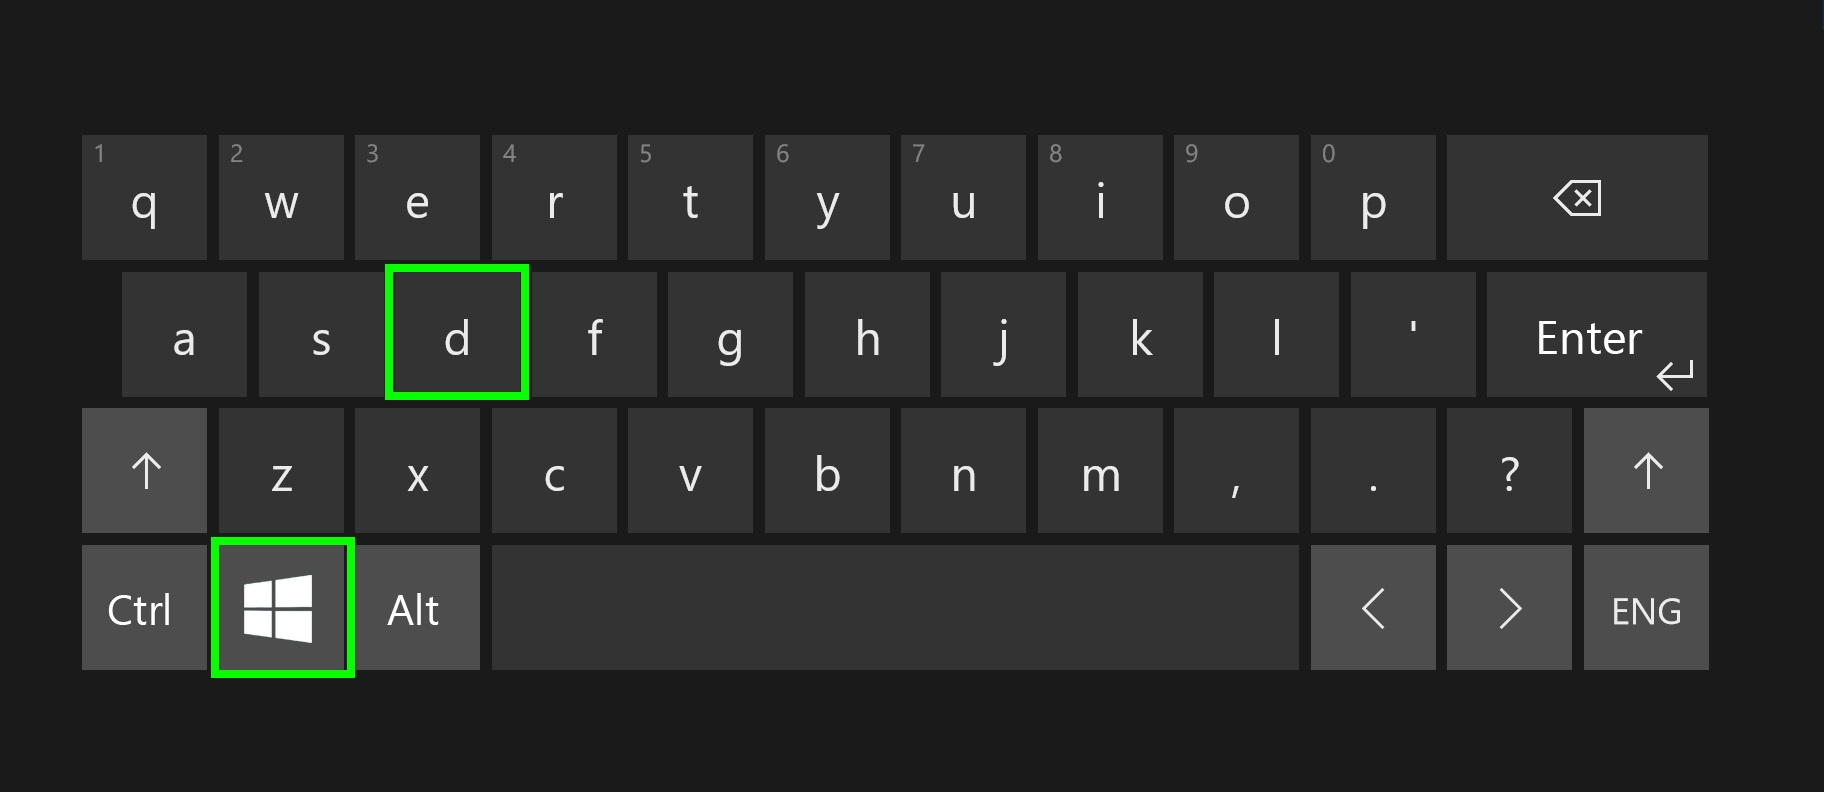 Digital keyboard with highlighted shortcut Windows and D